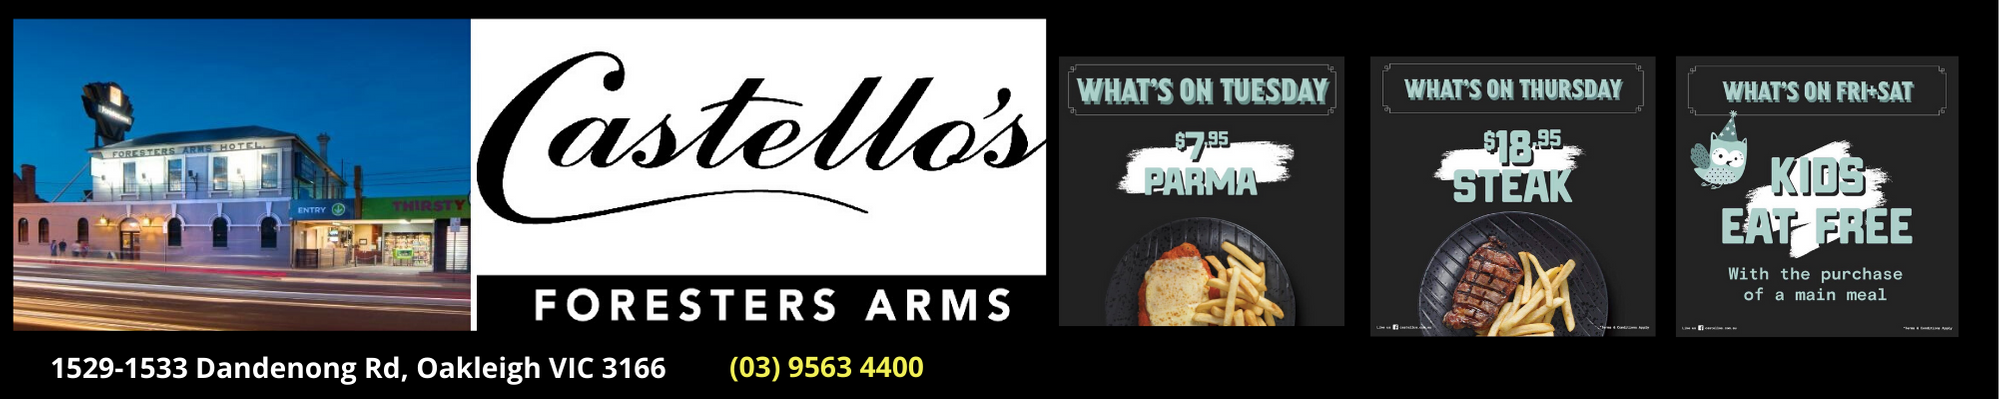 https://castellos.com.au/venues/foresters-arms-hotel-oakleigh-family-bistro/